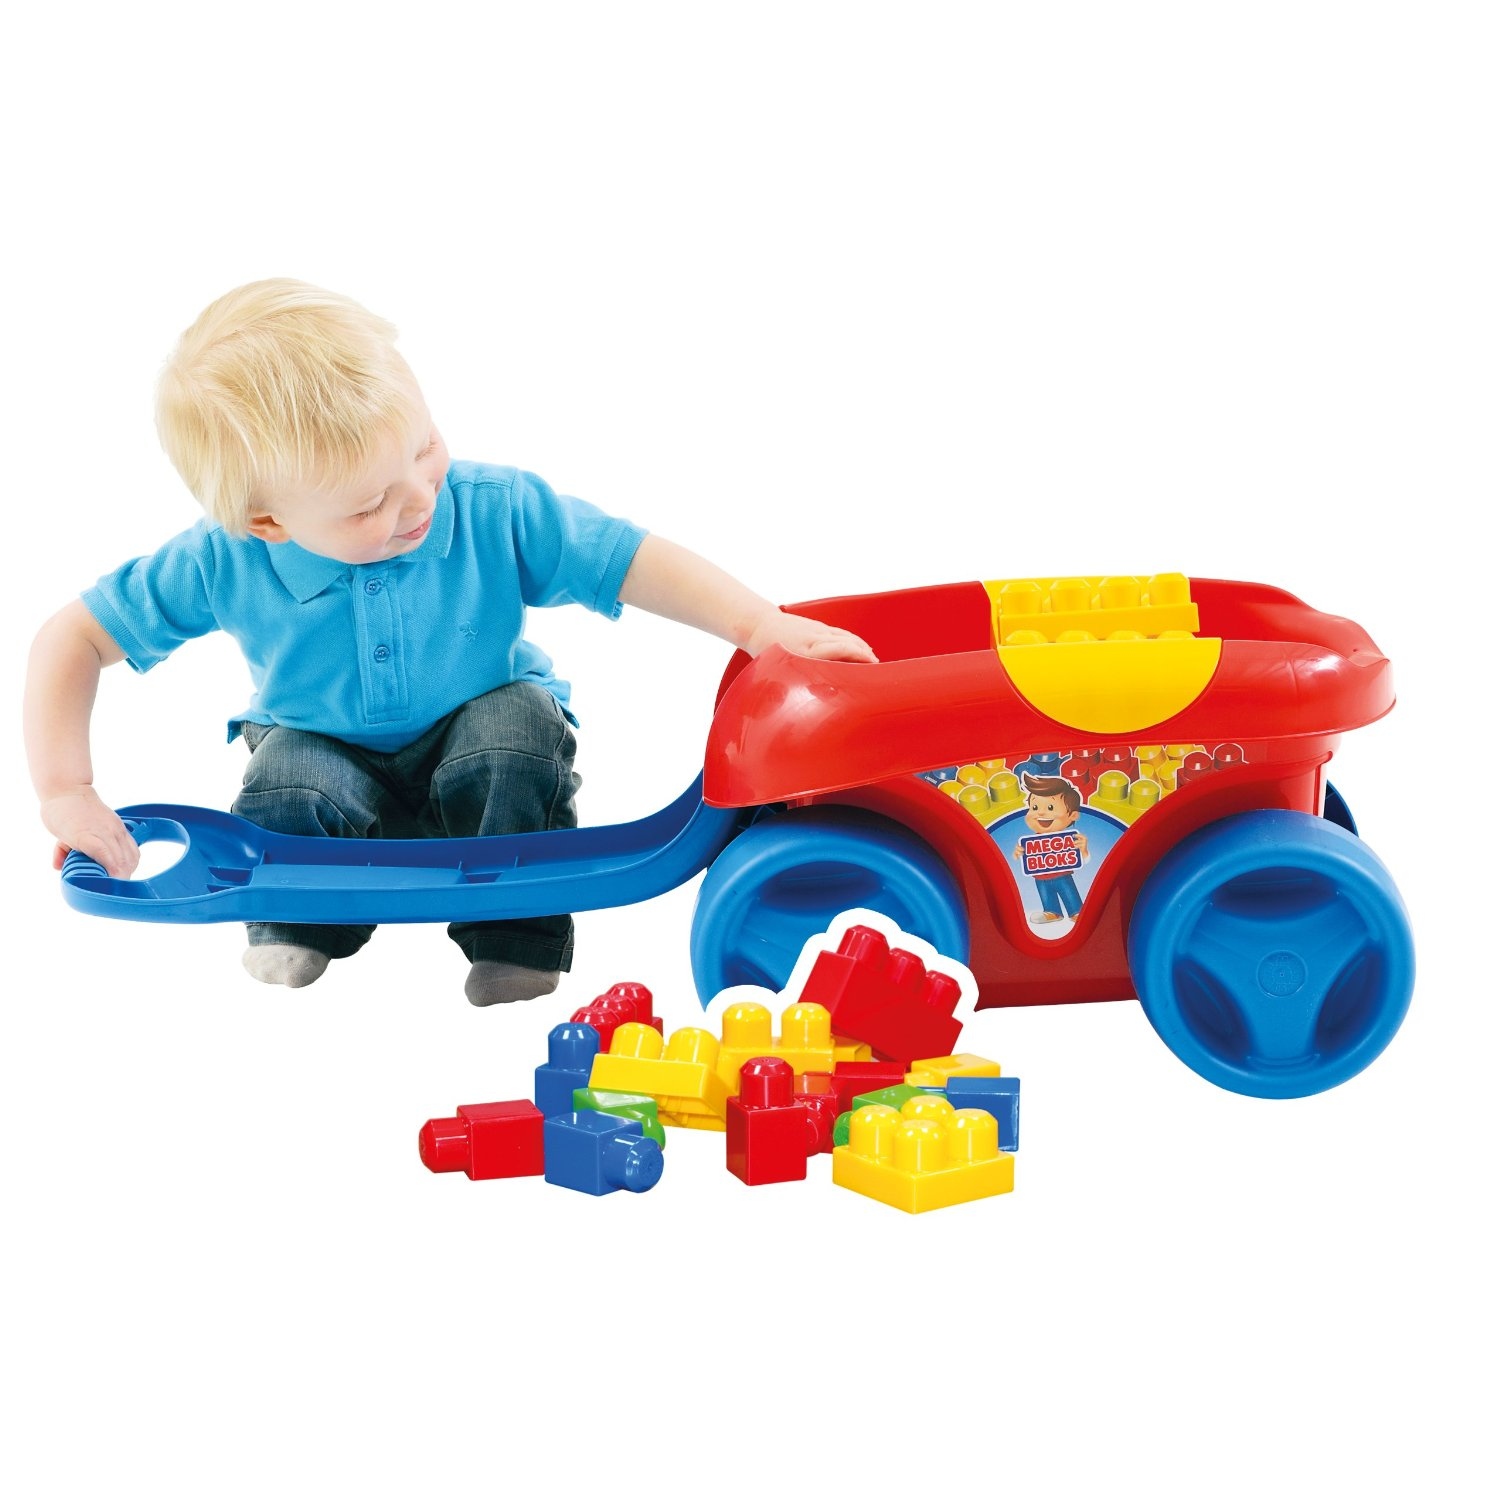 Total Fab Best Gifts Ideas for e Year Old Boys First Birthday